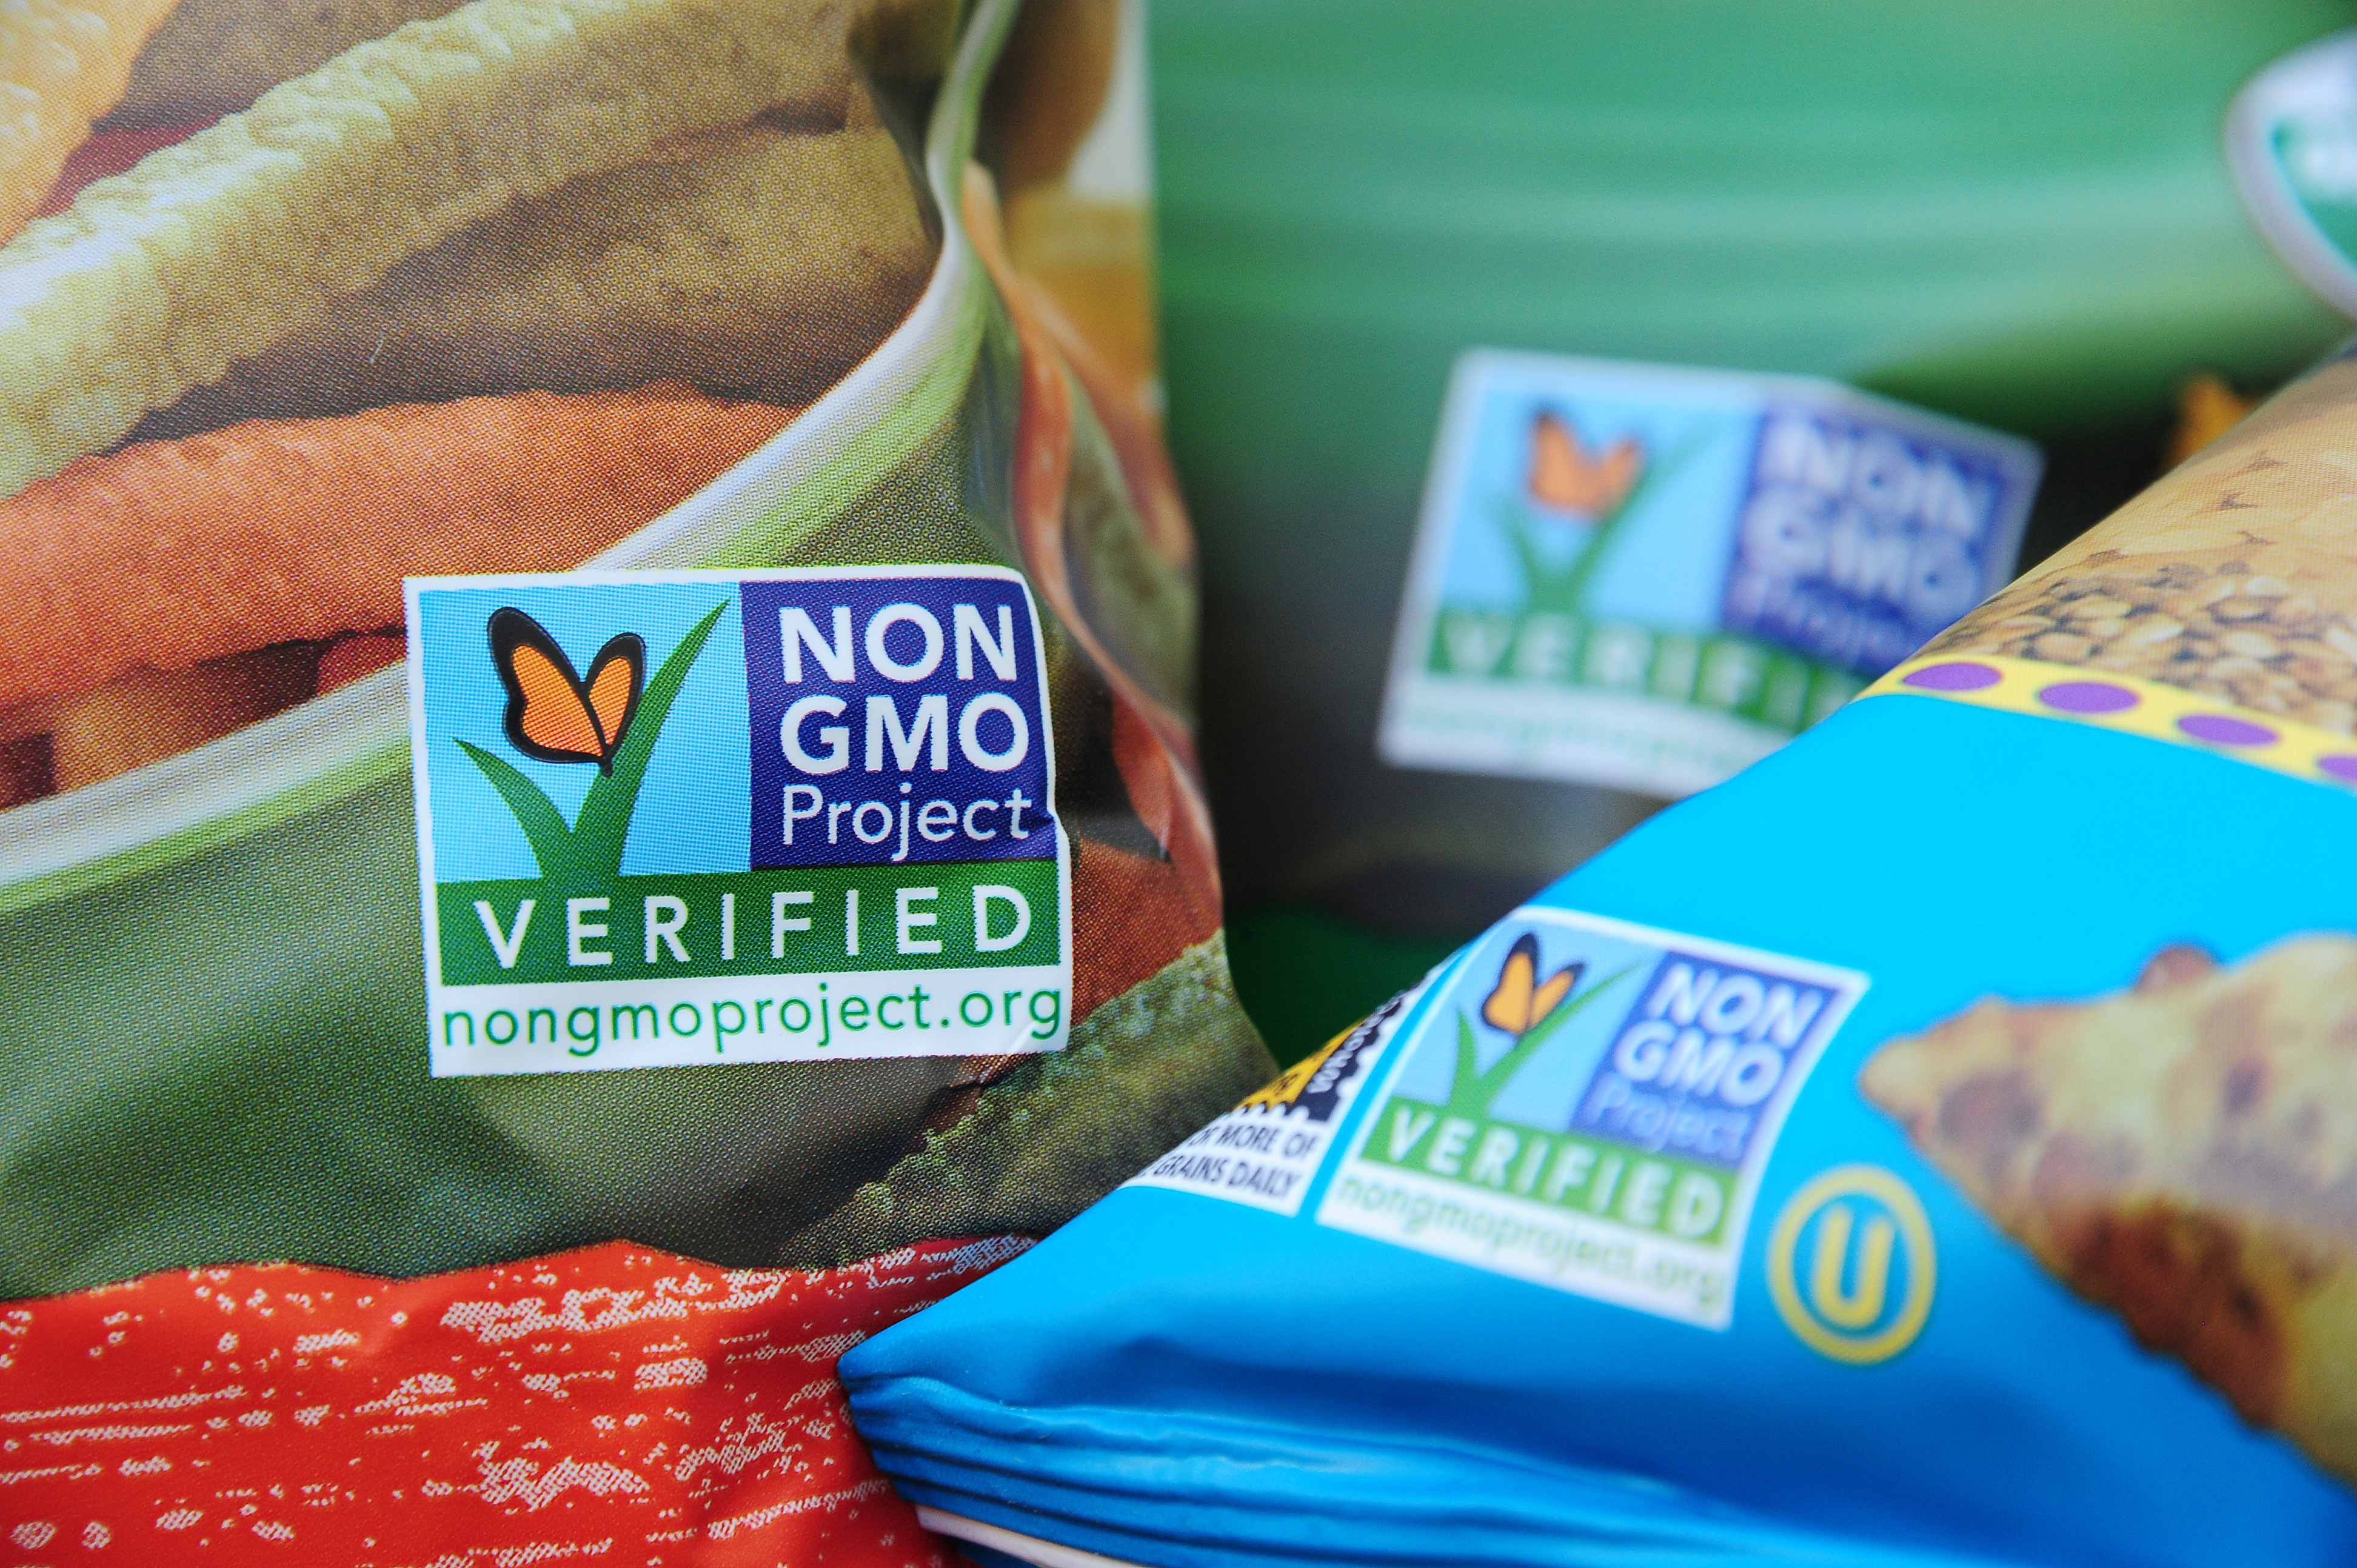 Labels on bags of snack foods indicate they are non-GMO products, Los Angeles, California,  Oct. 19, 2012.